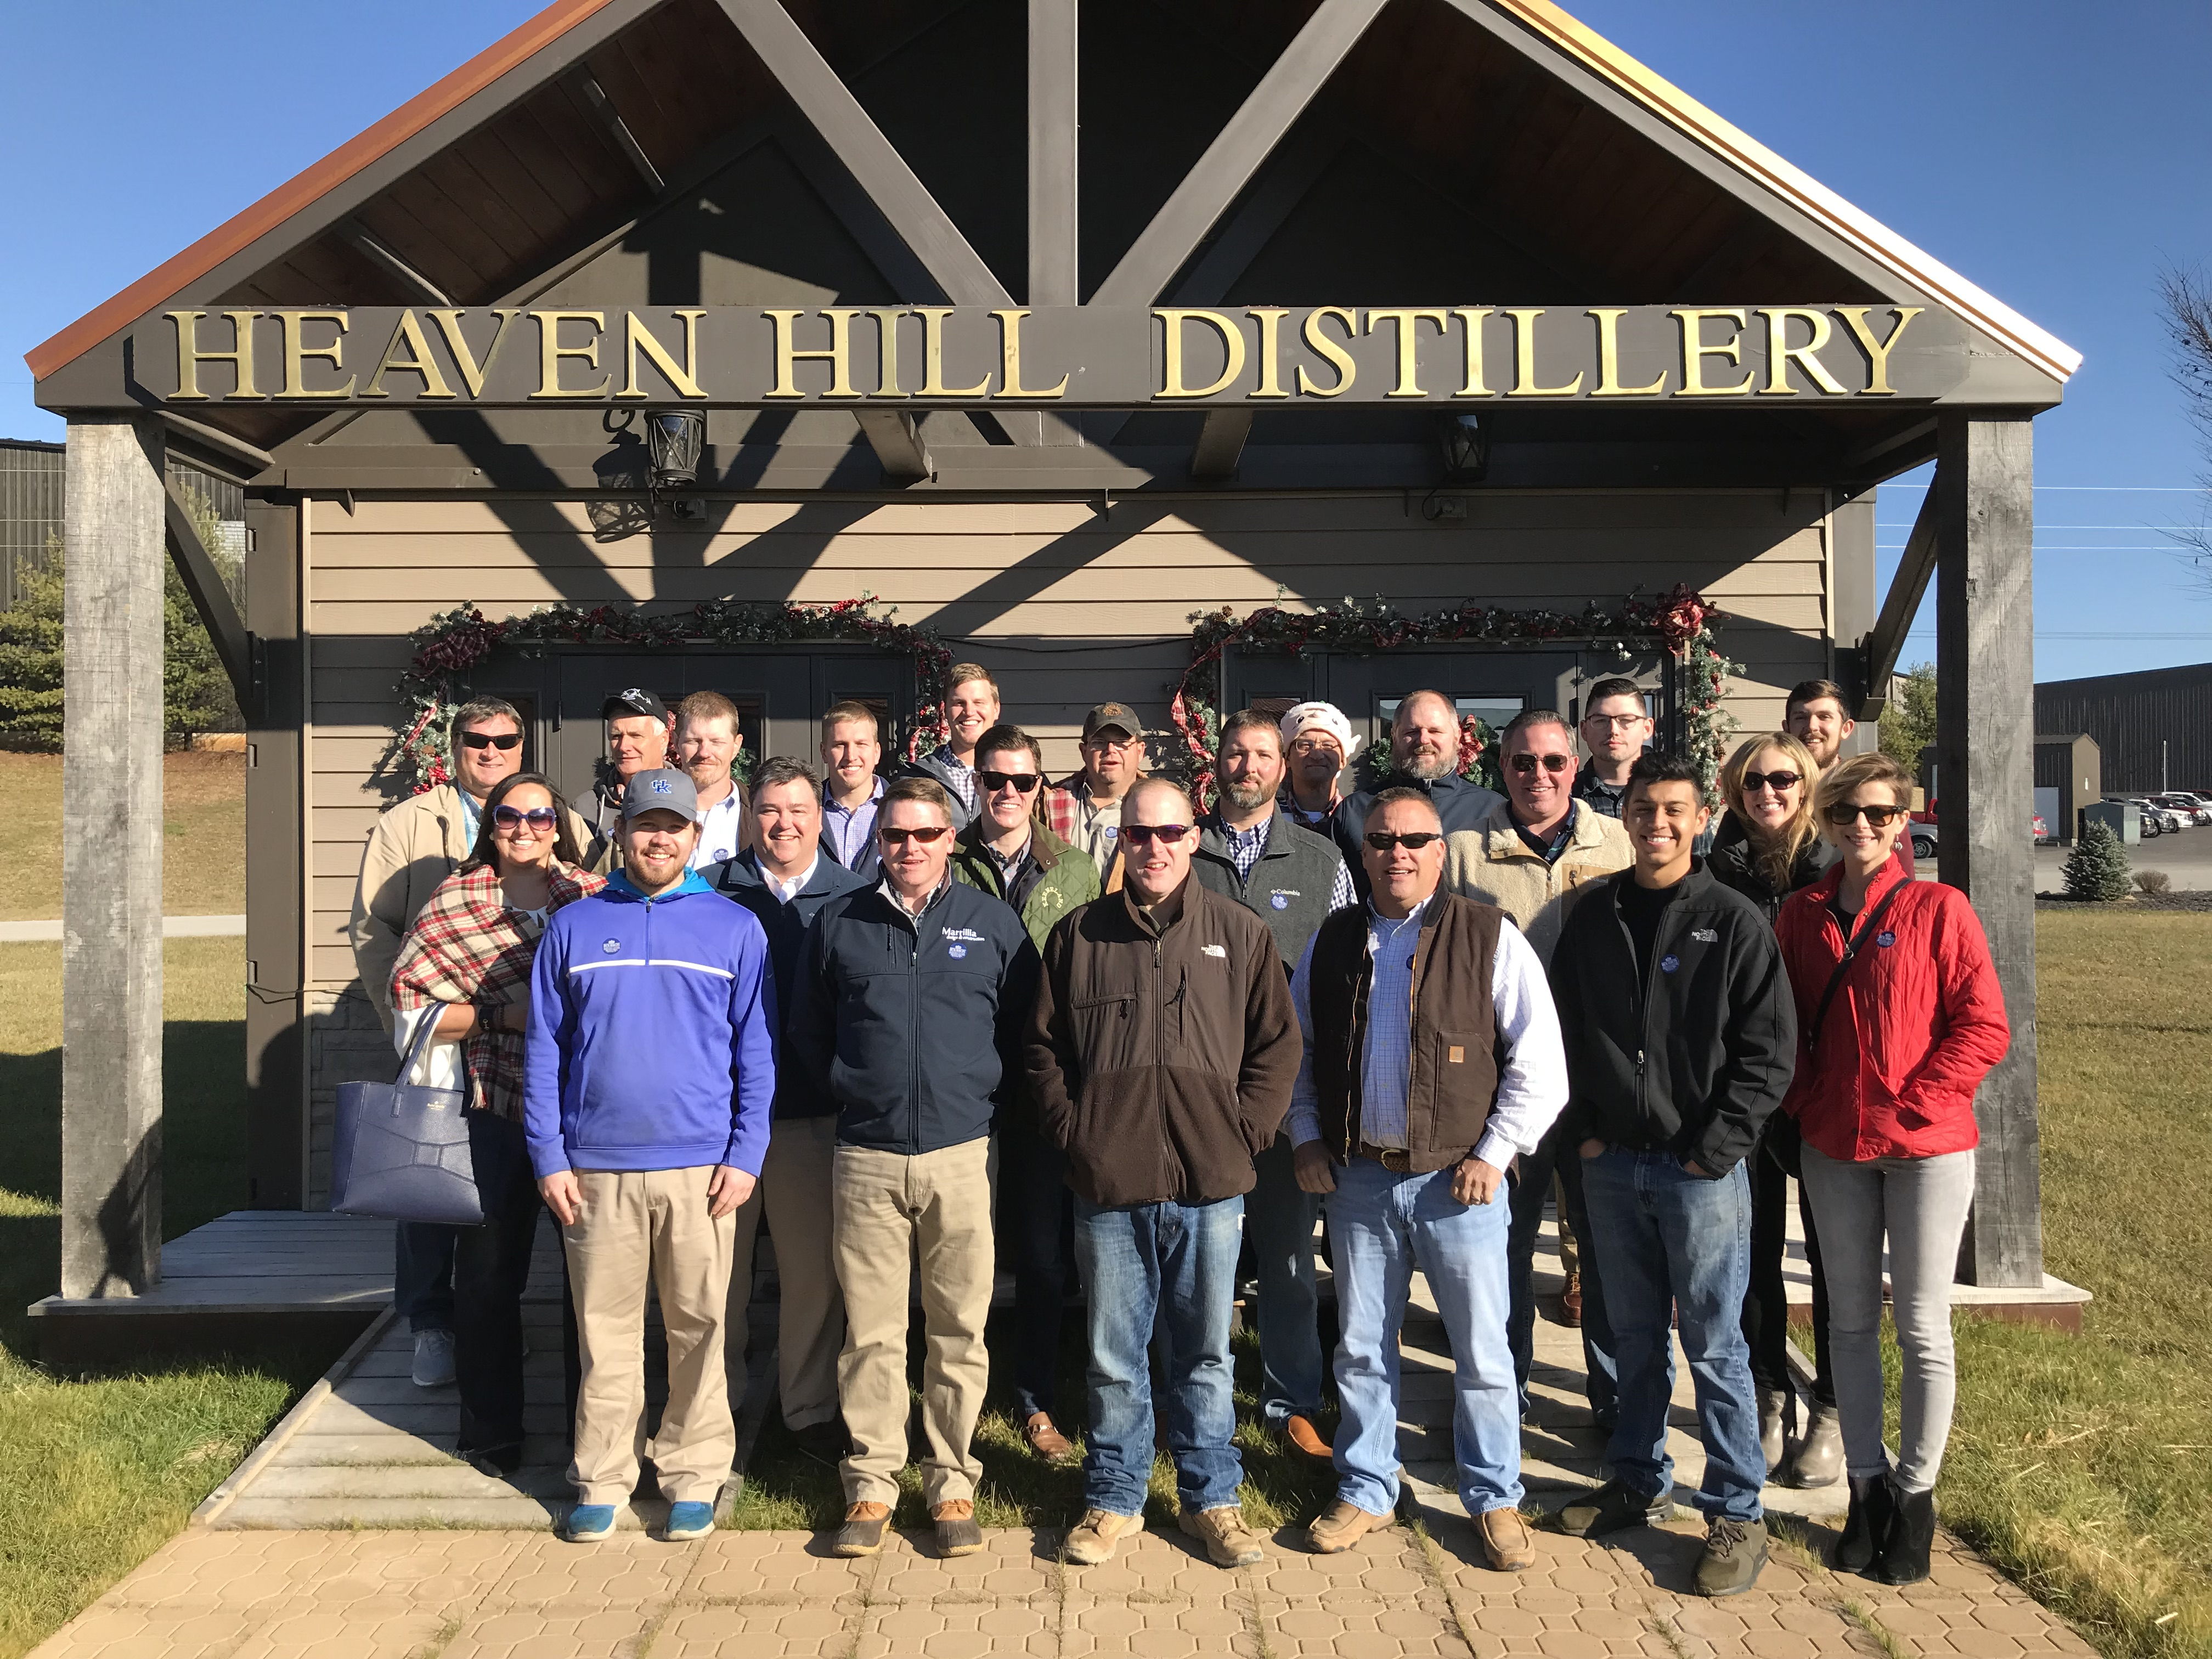 Heaven Hill Distillery